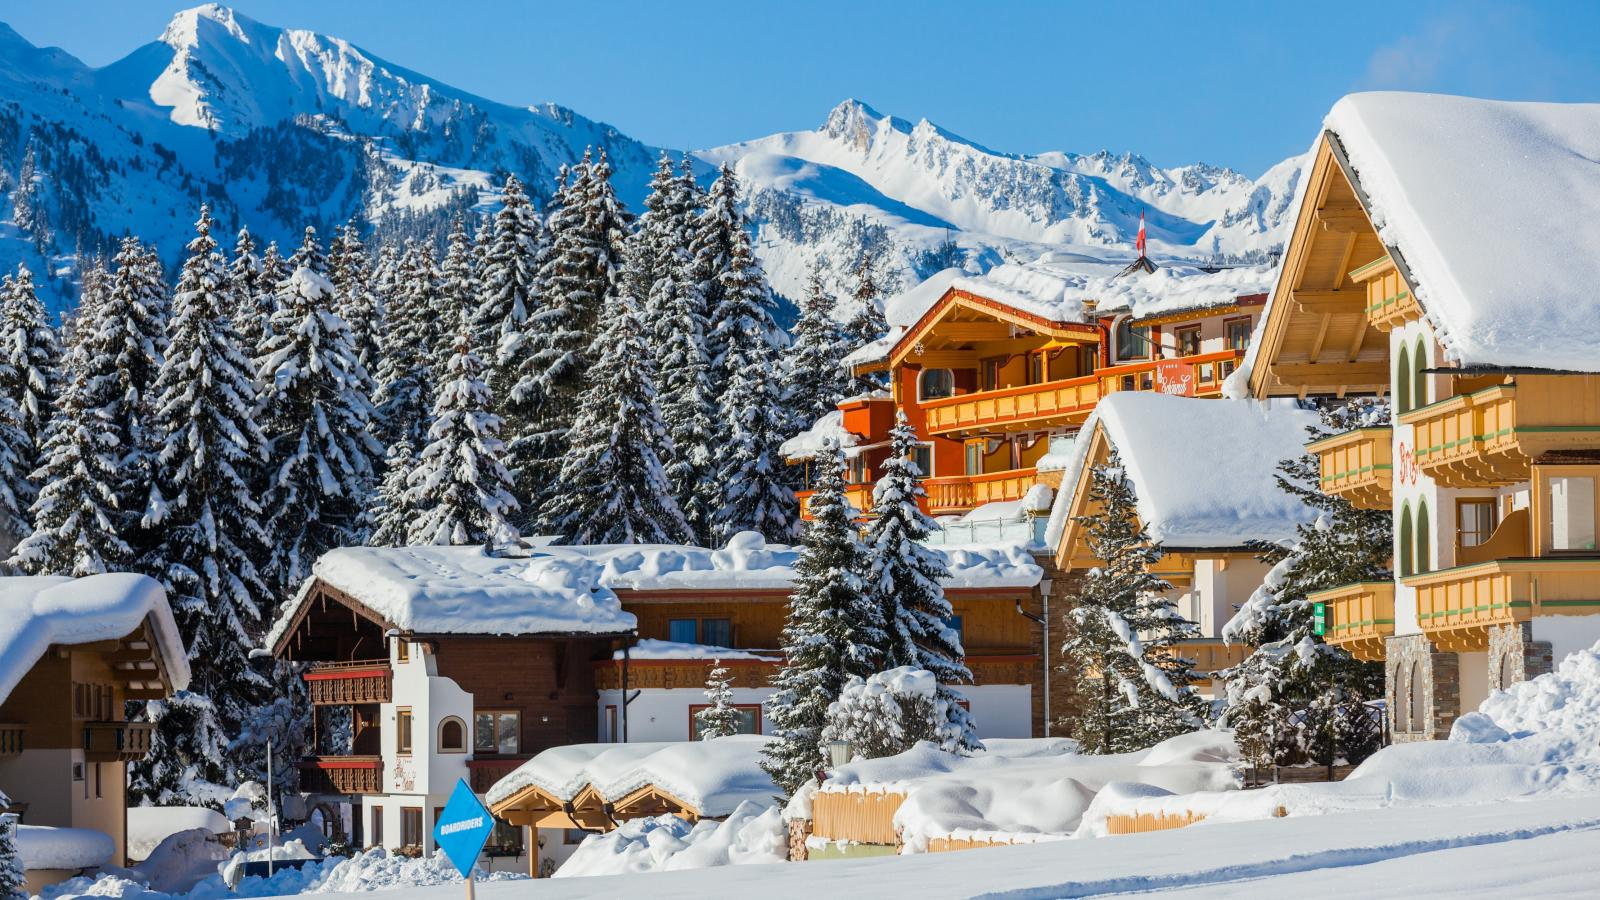 Ski Holidays To Austria Topflight Ireland S No 1 Ski